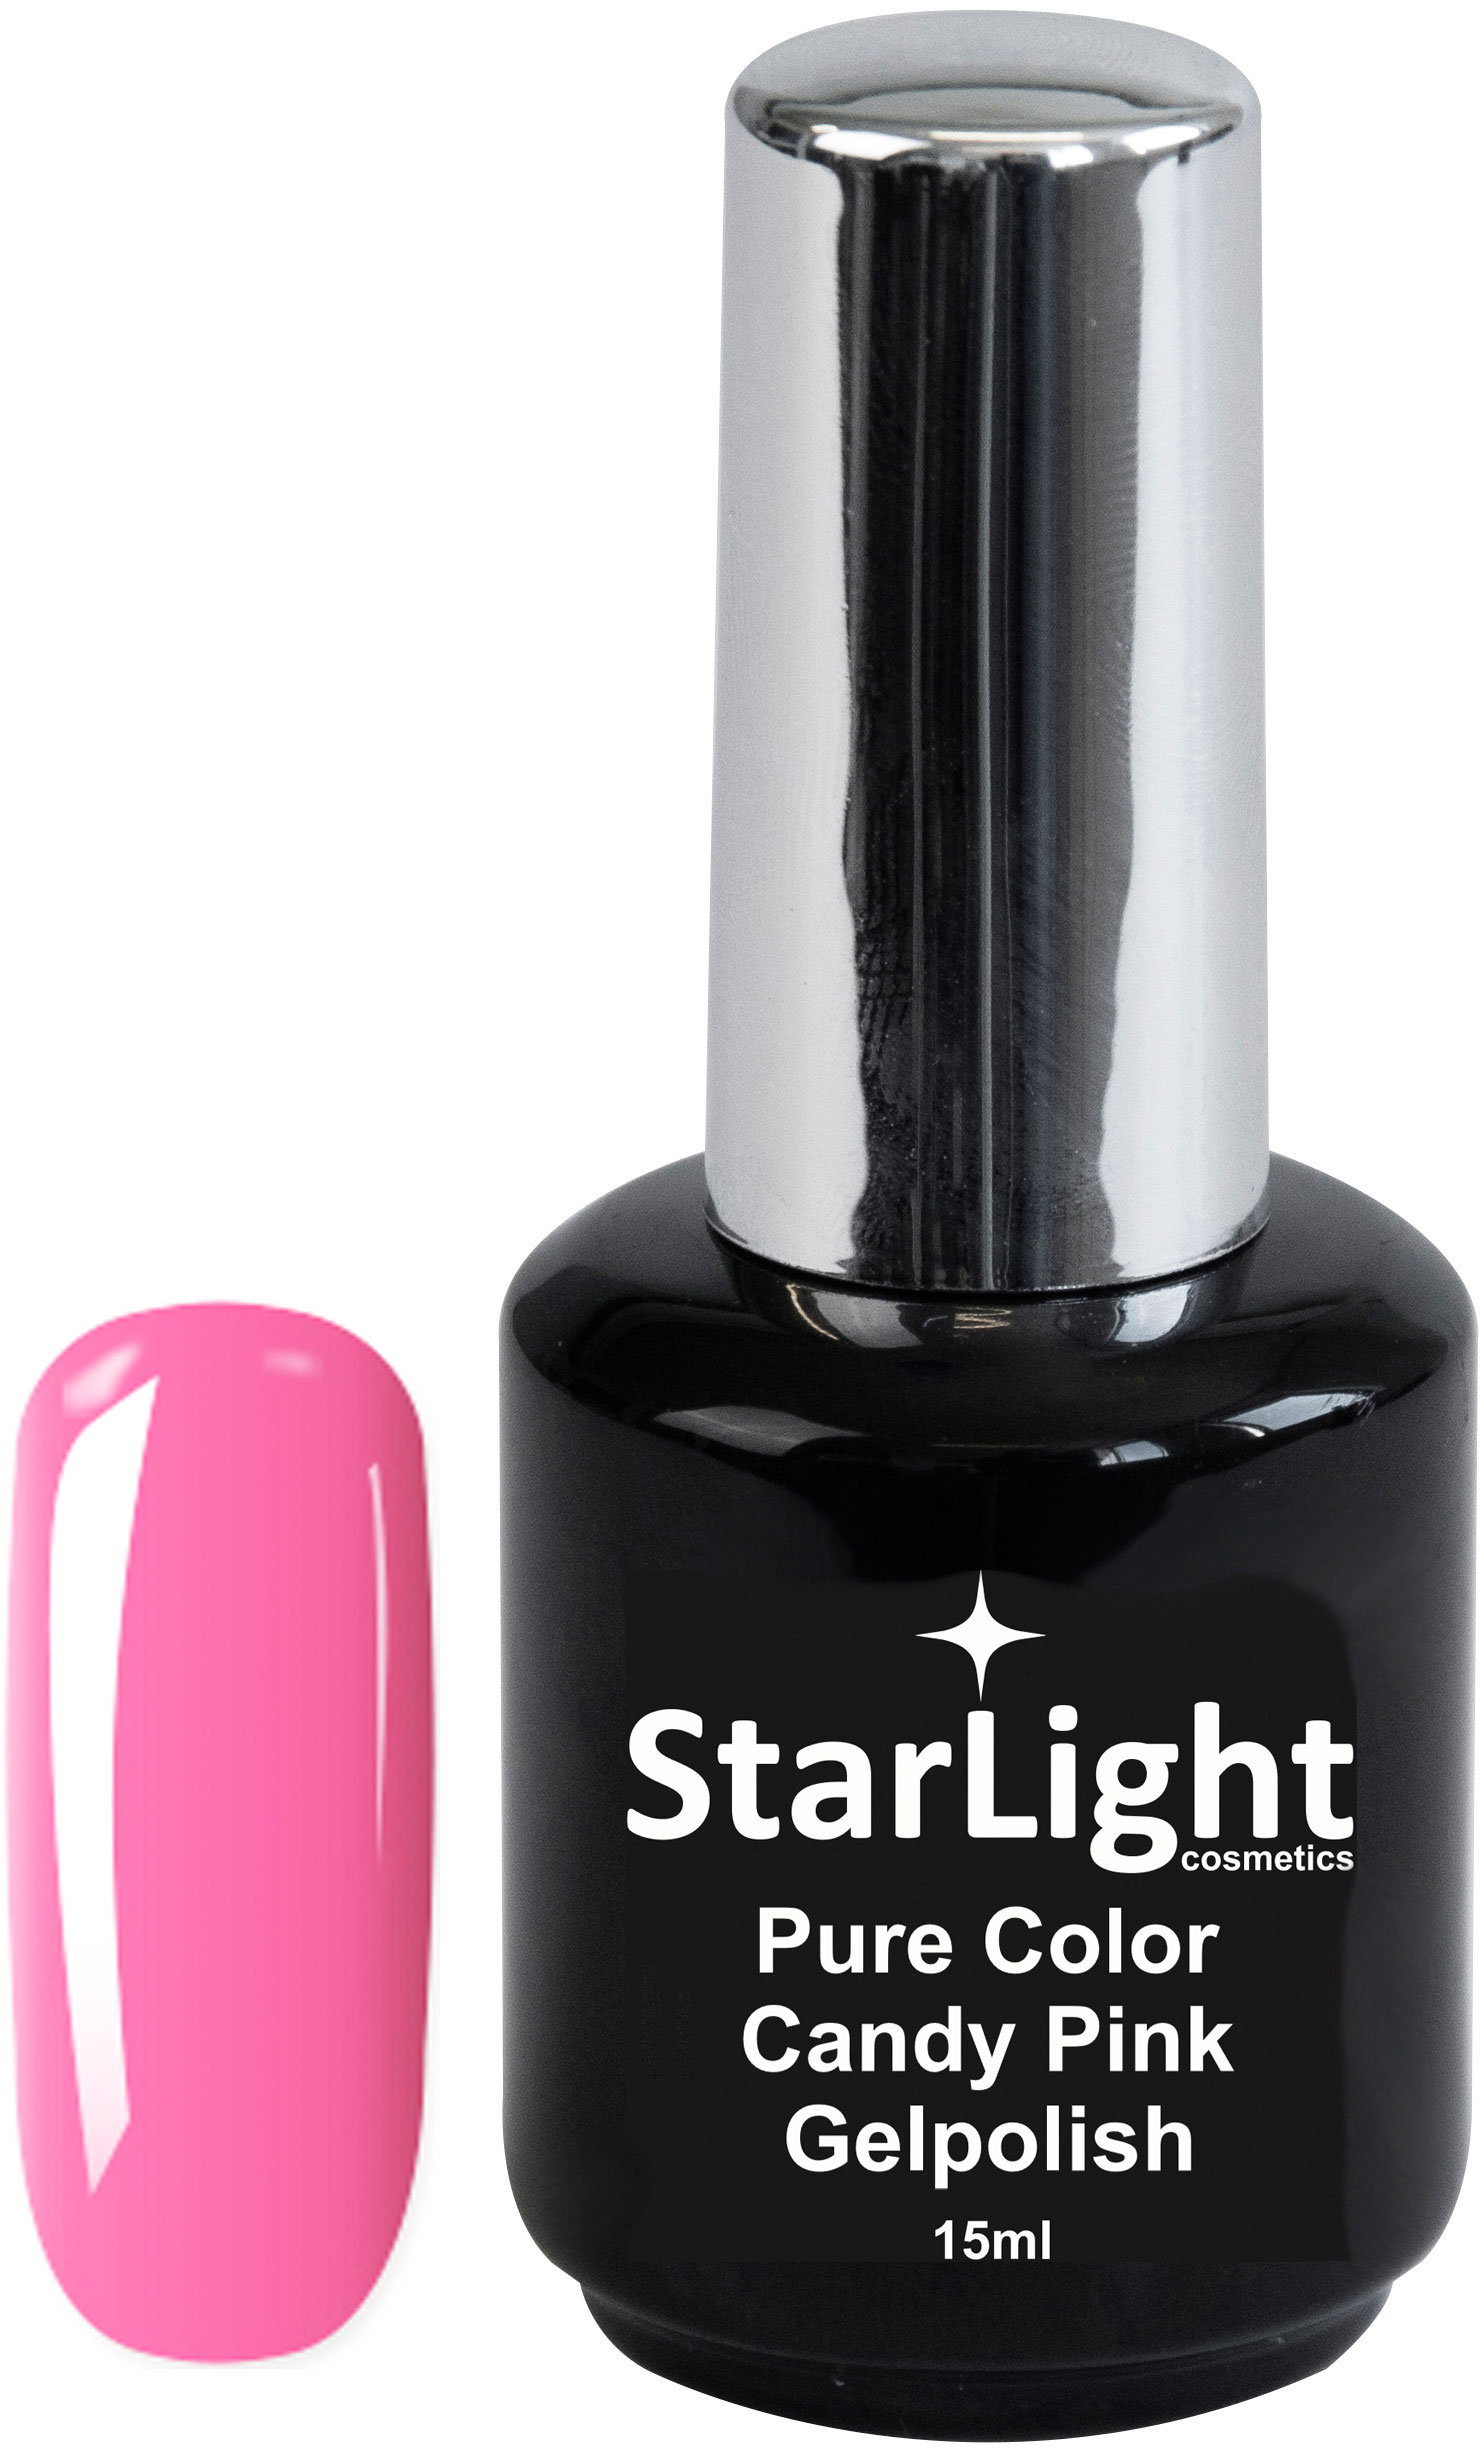 Naglar Gelpolish Pure Color Candy Pink - 15 ml